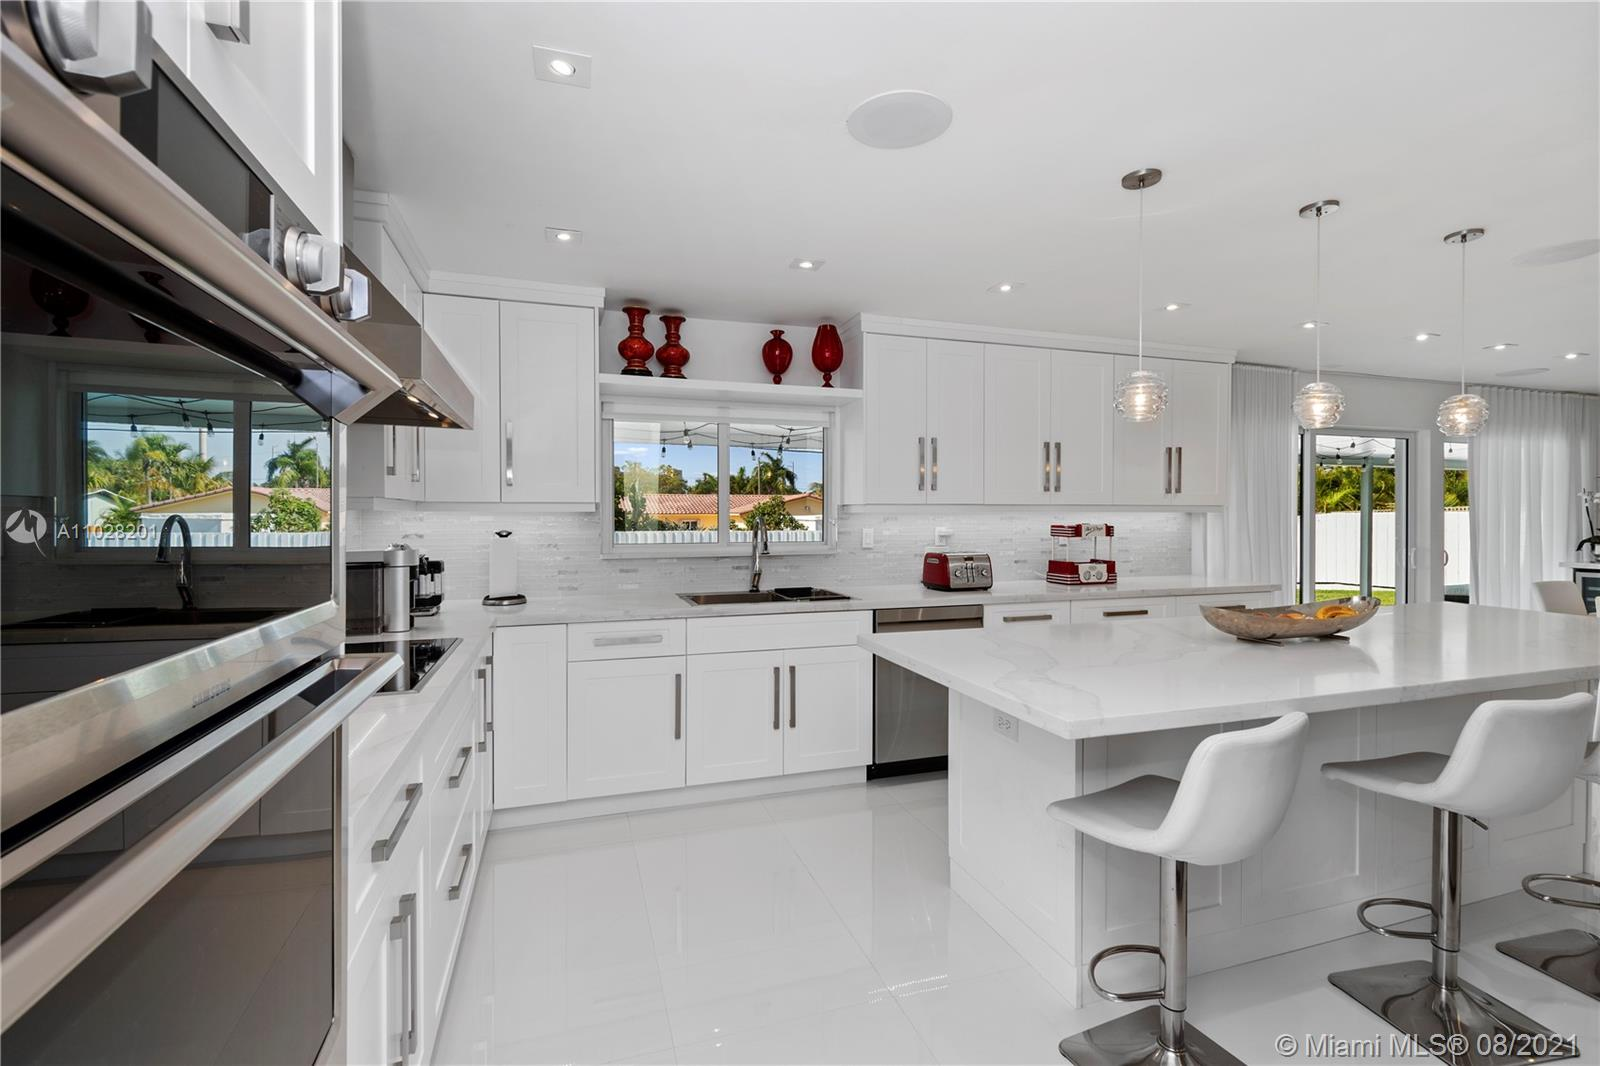 Gorgeous kitchen with all new built in oven and microwave, smart refrigerator, plenty of seating space and cabinet storage!